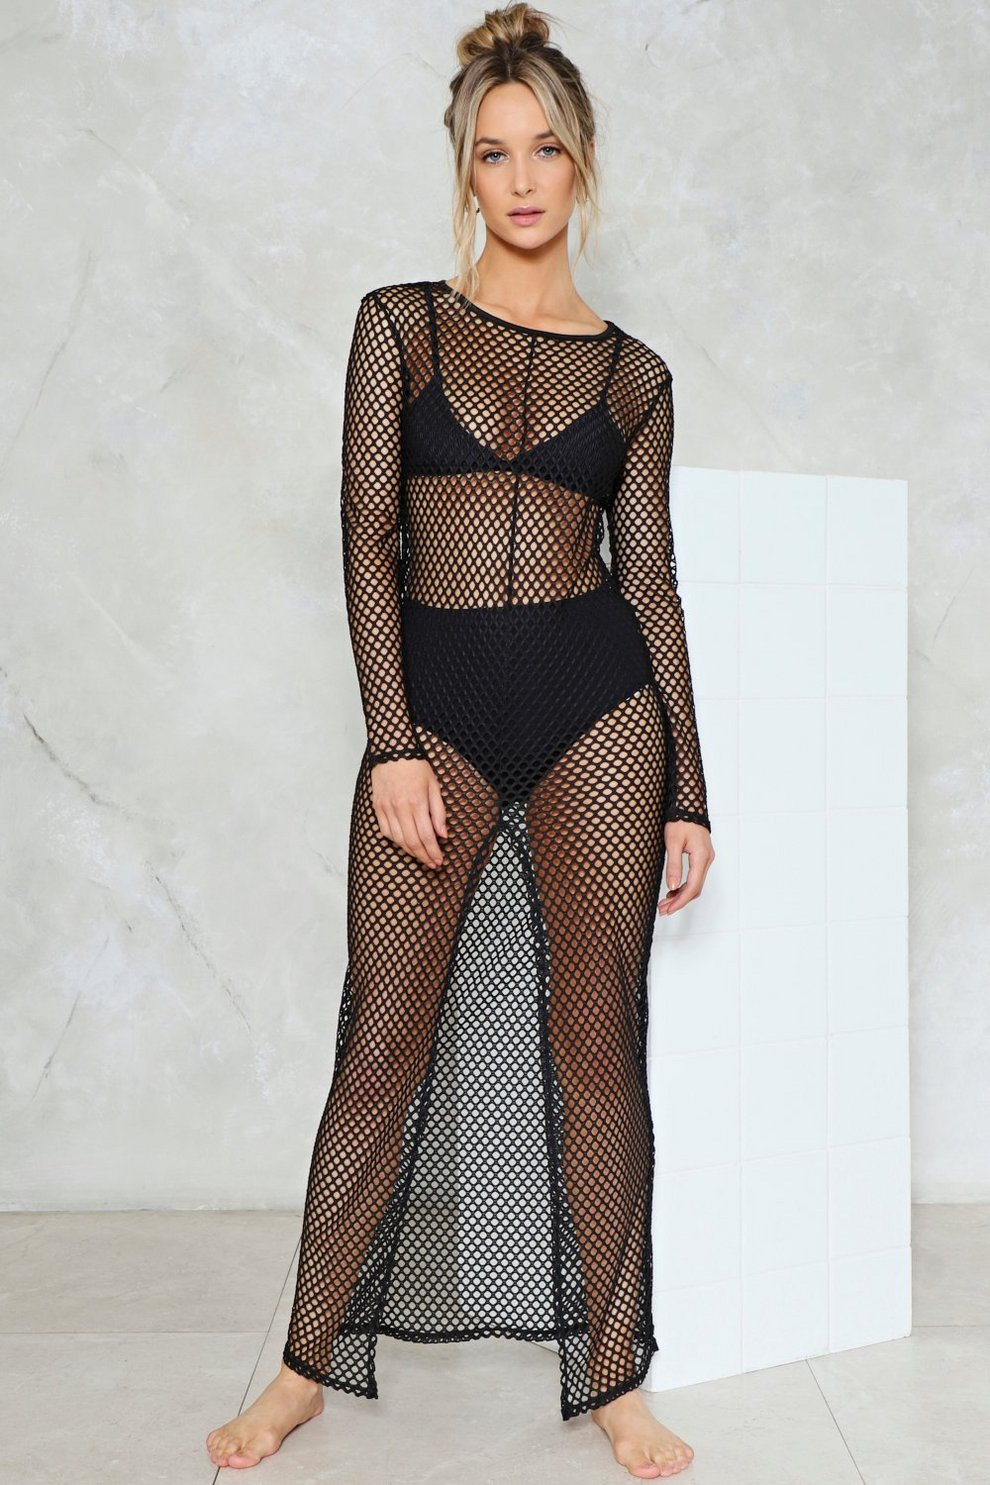 51751c1fa14c8 Net Ahead Fishnet Cover-Up | Shop Clothes at Nasty Gal!